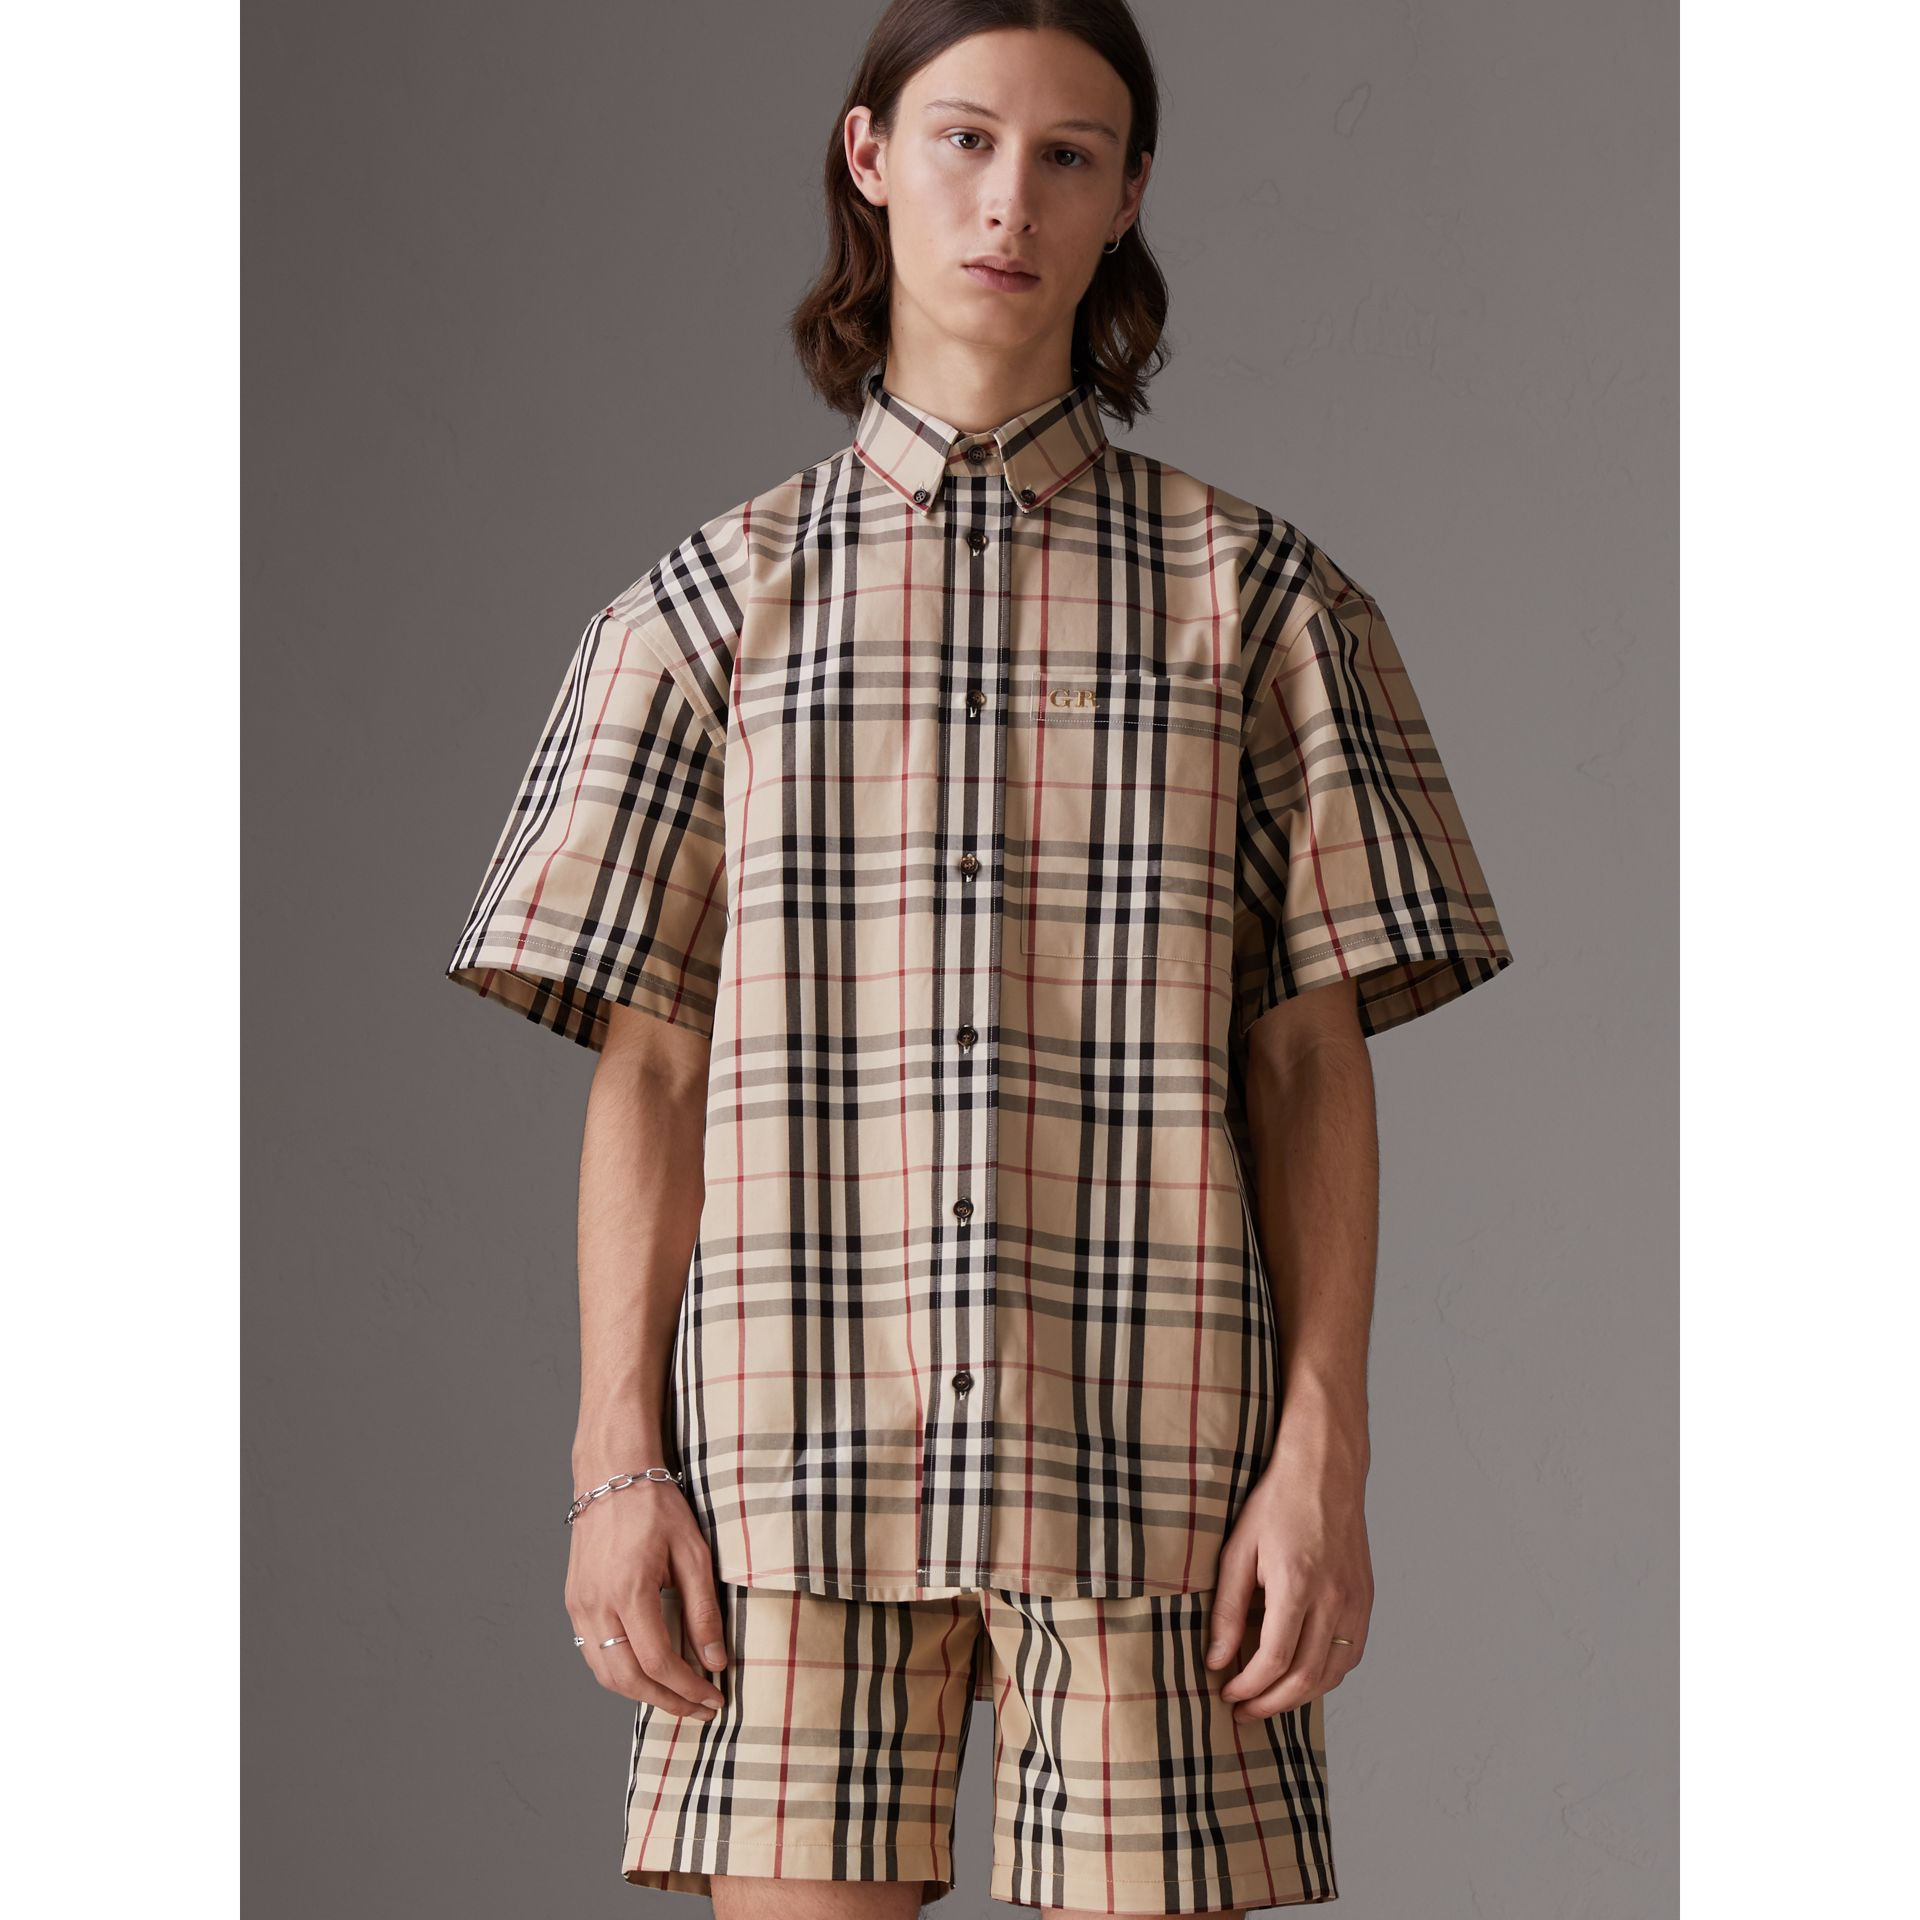 Gosha x Burberry Short-sleeve Check Shirt in Honey | Burberry - gallery image 0